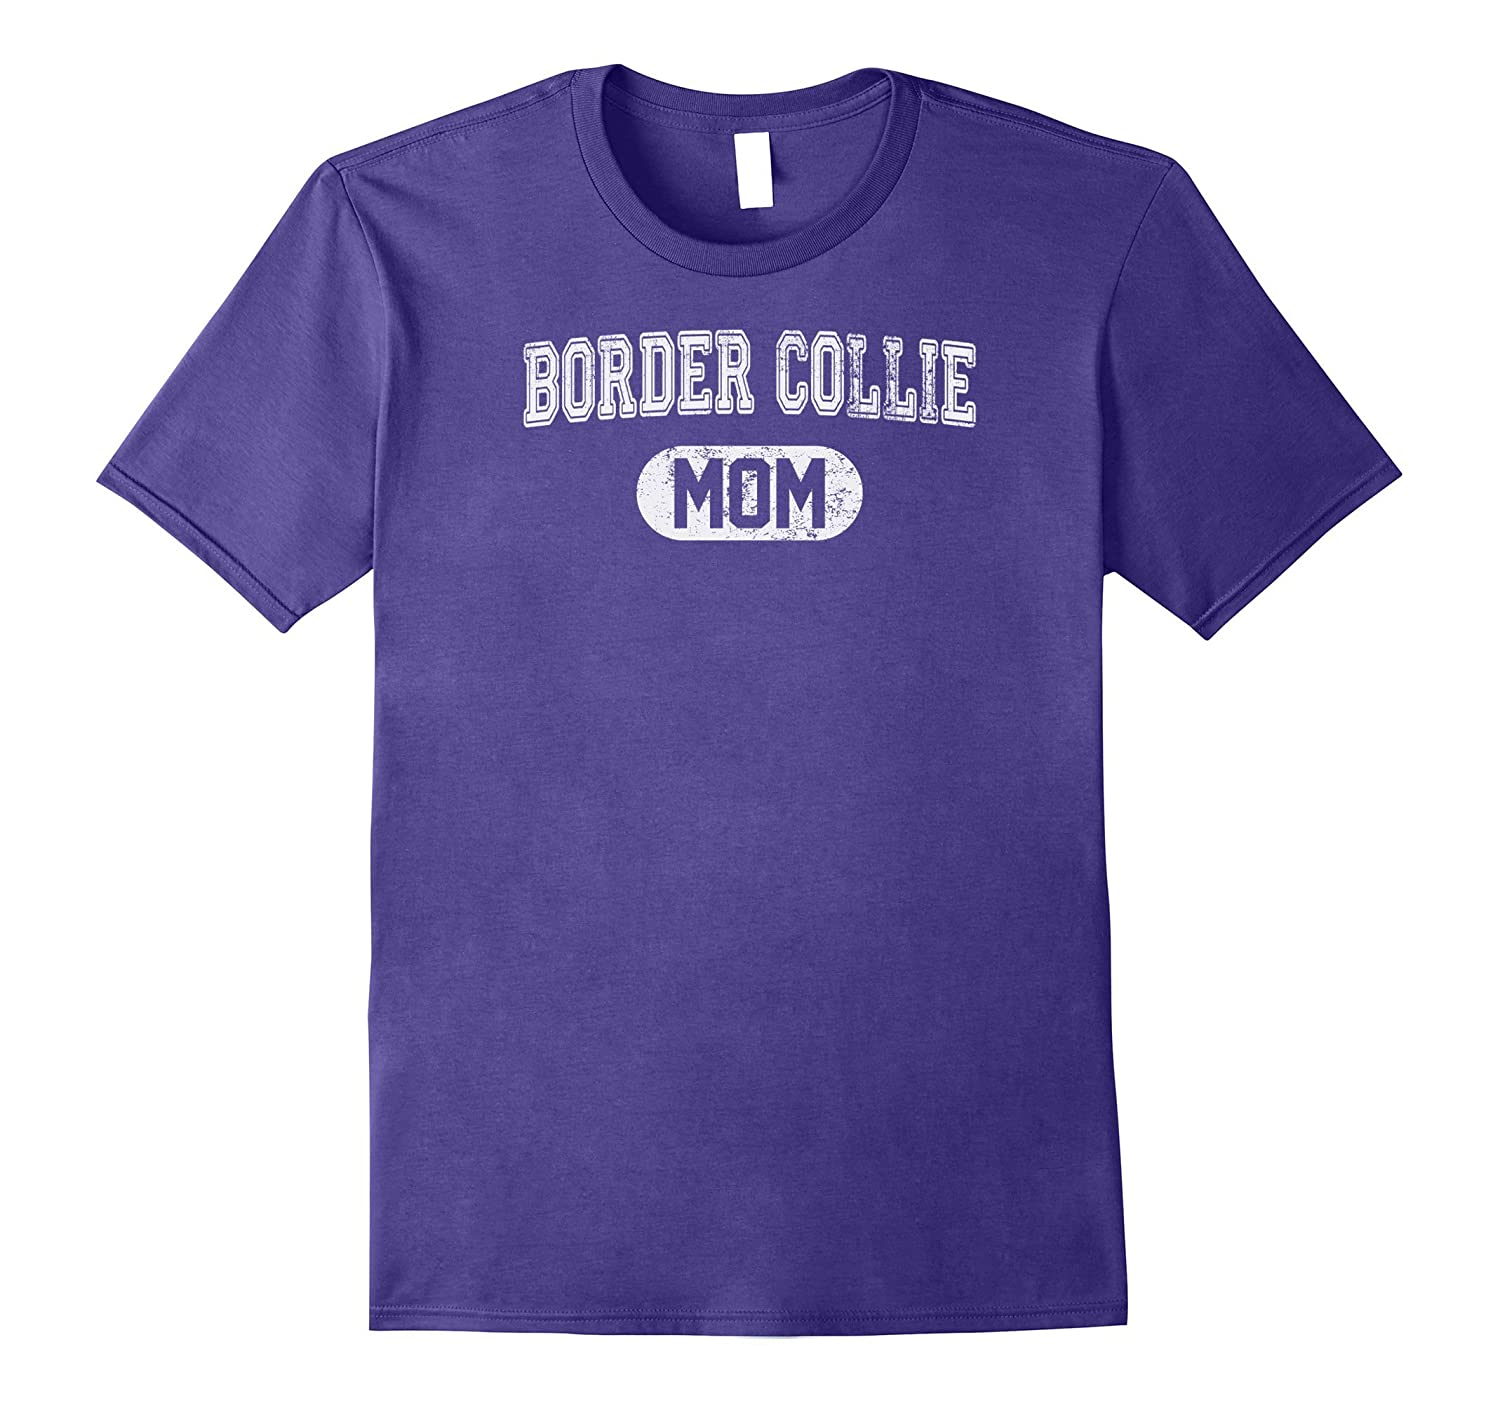 Border Collie MOM – Awesome Border Collie T-Shirt